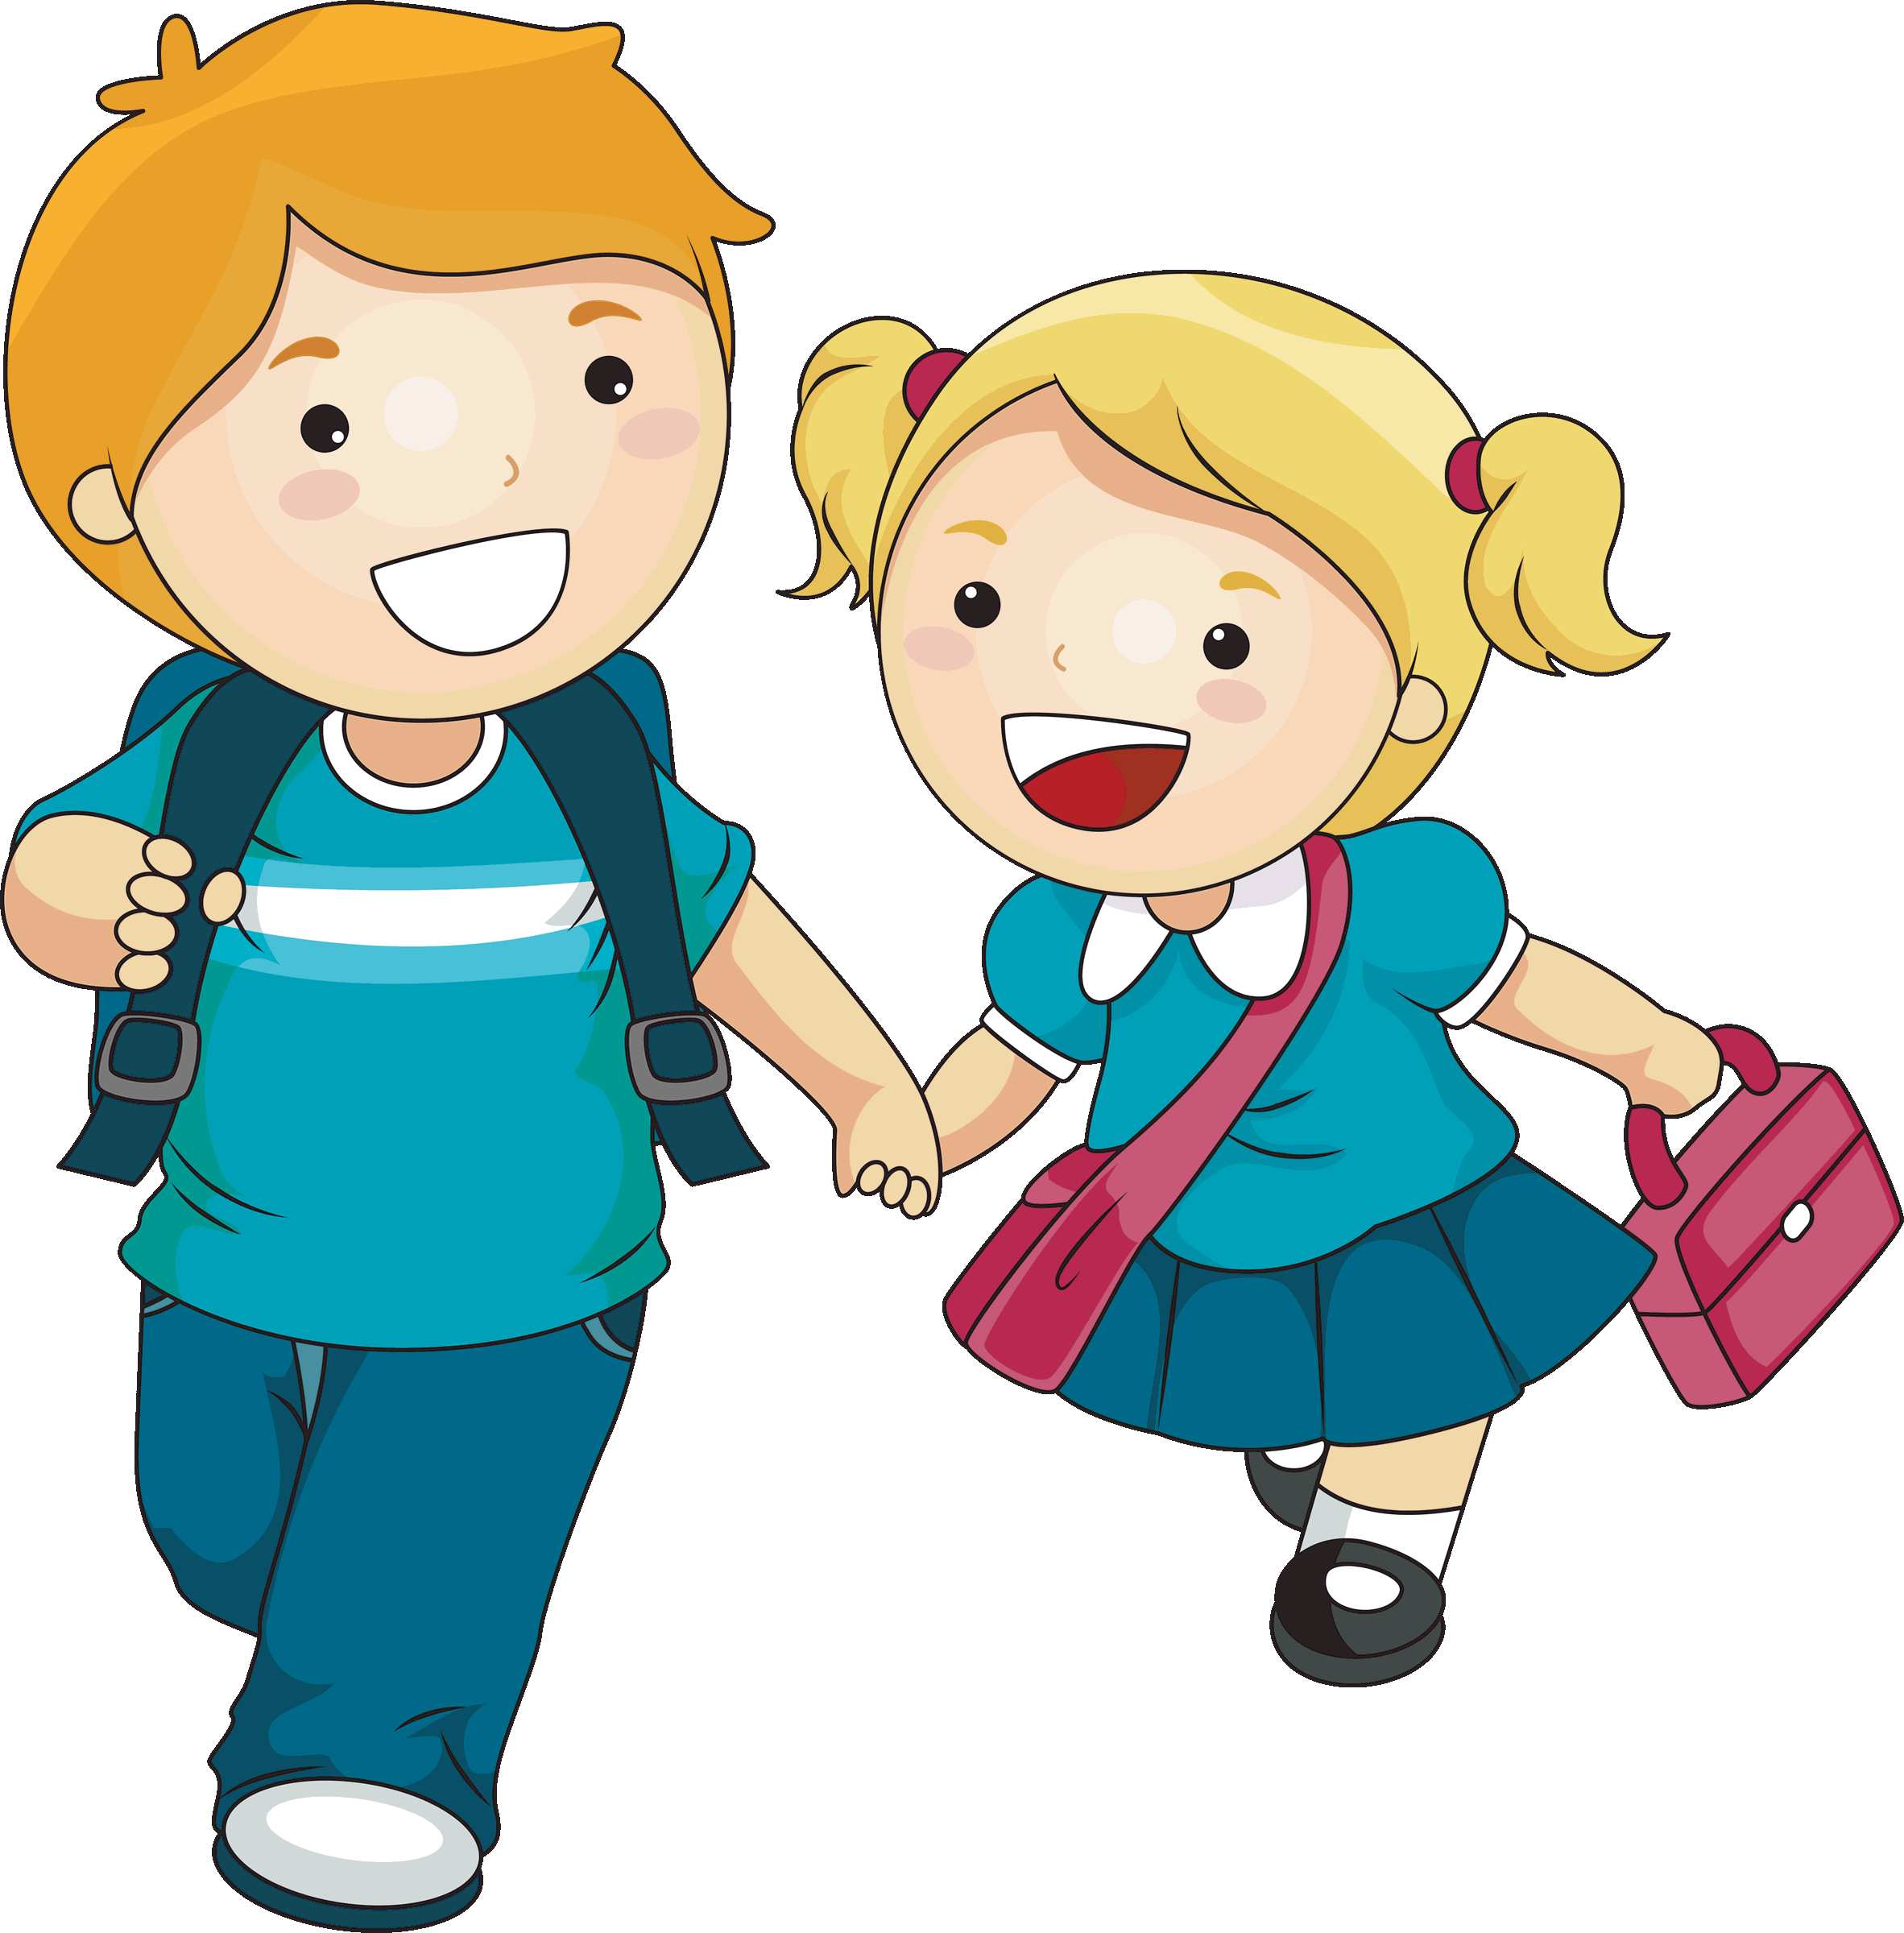 School snack time clipart svg Free Kids Clipart & Kids Clip Art Images - ClipartALL.com svg